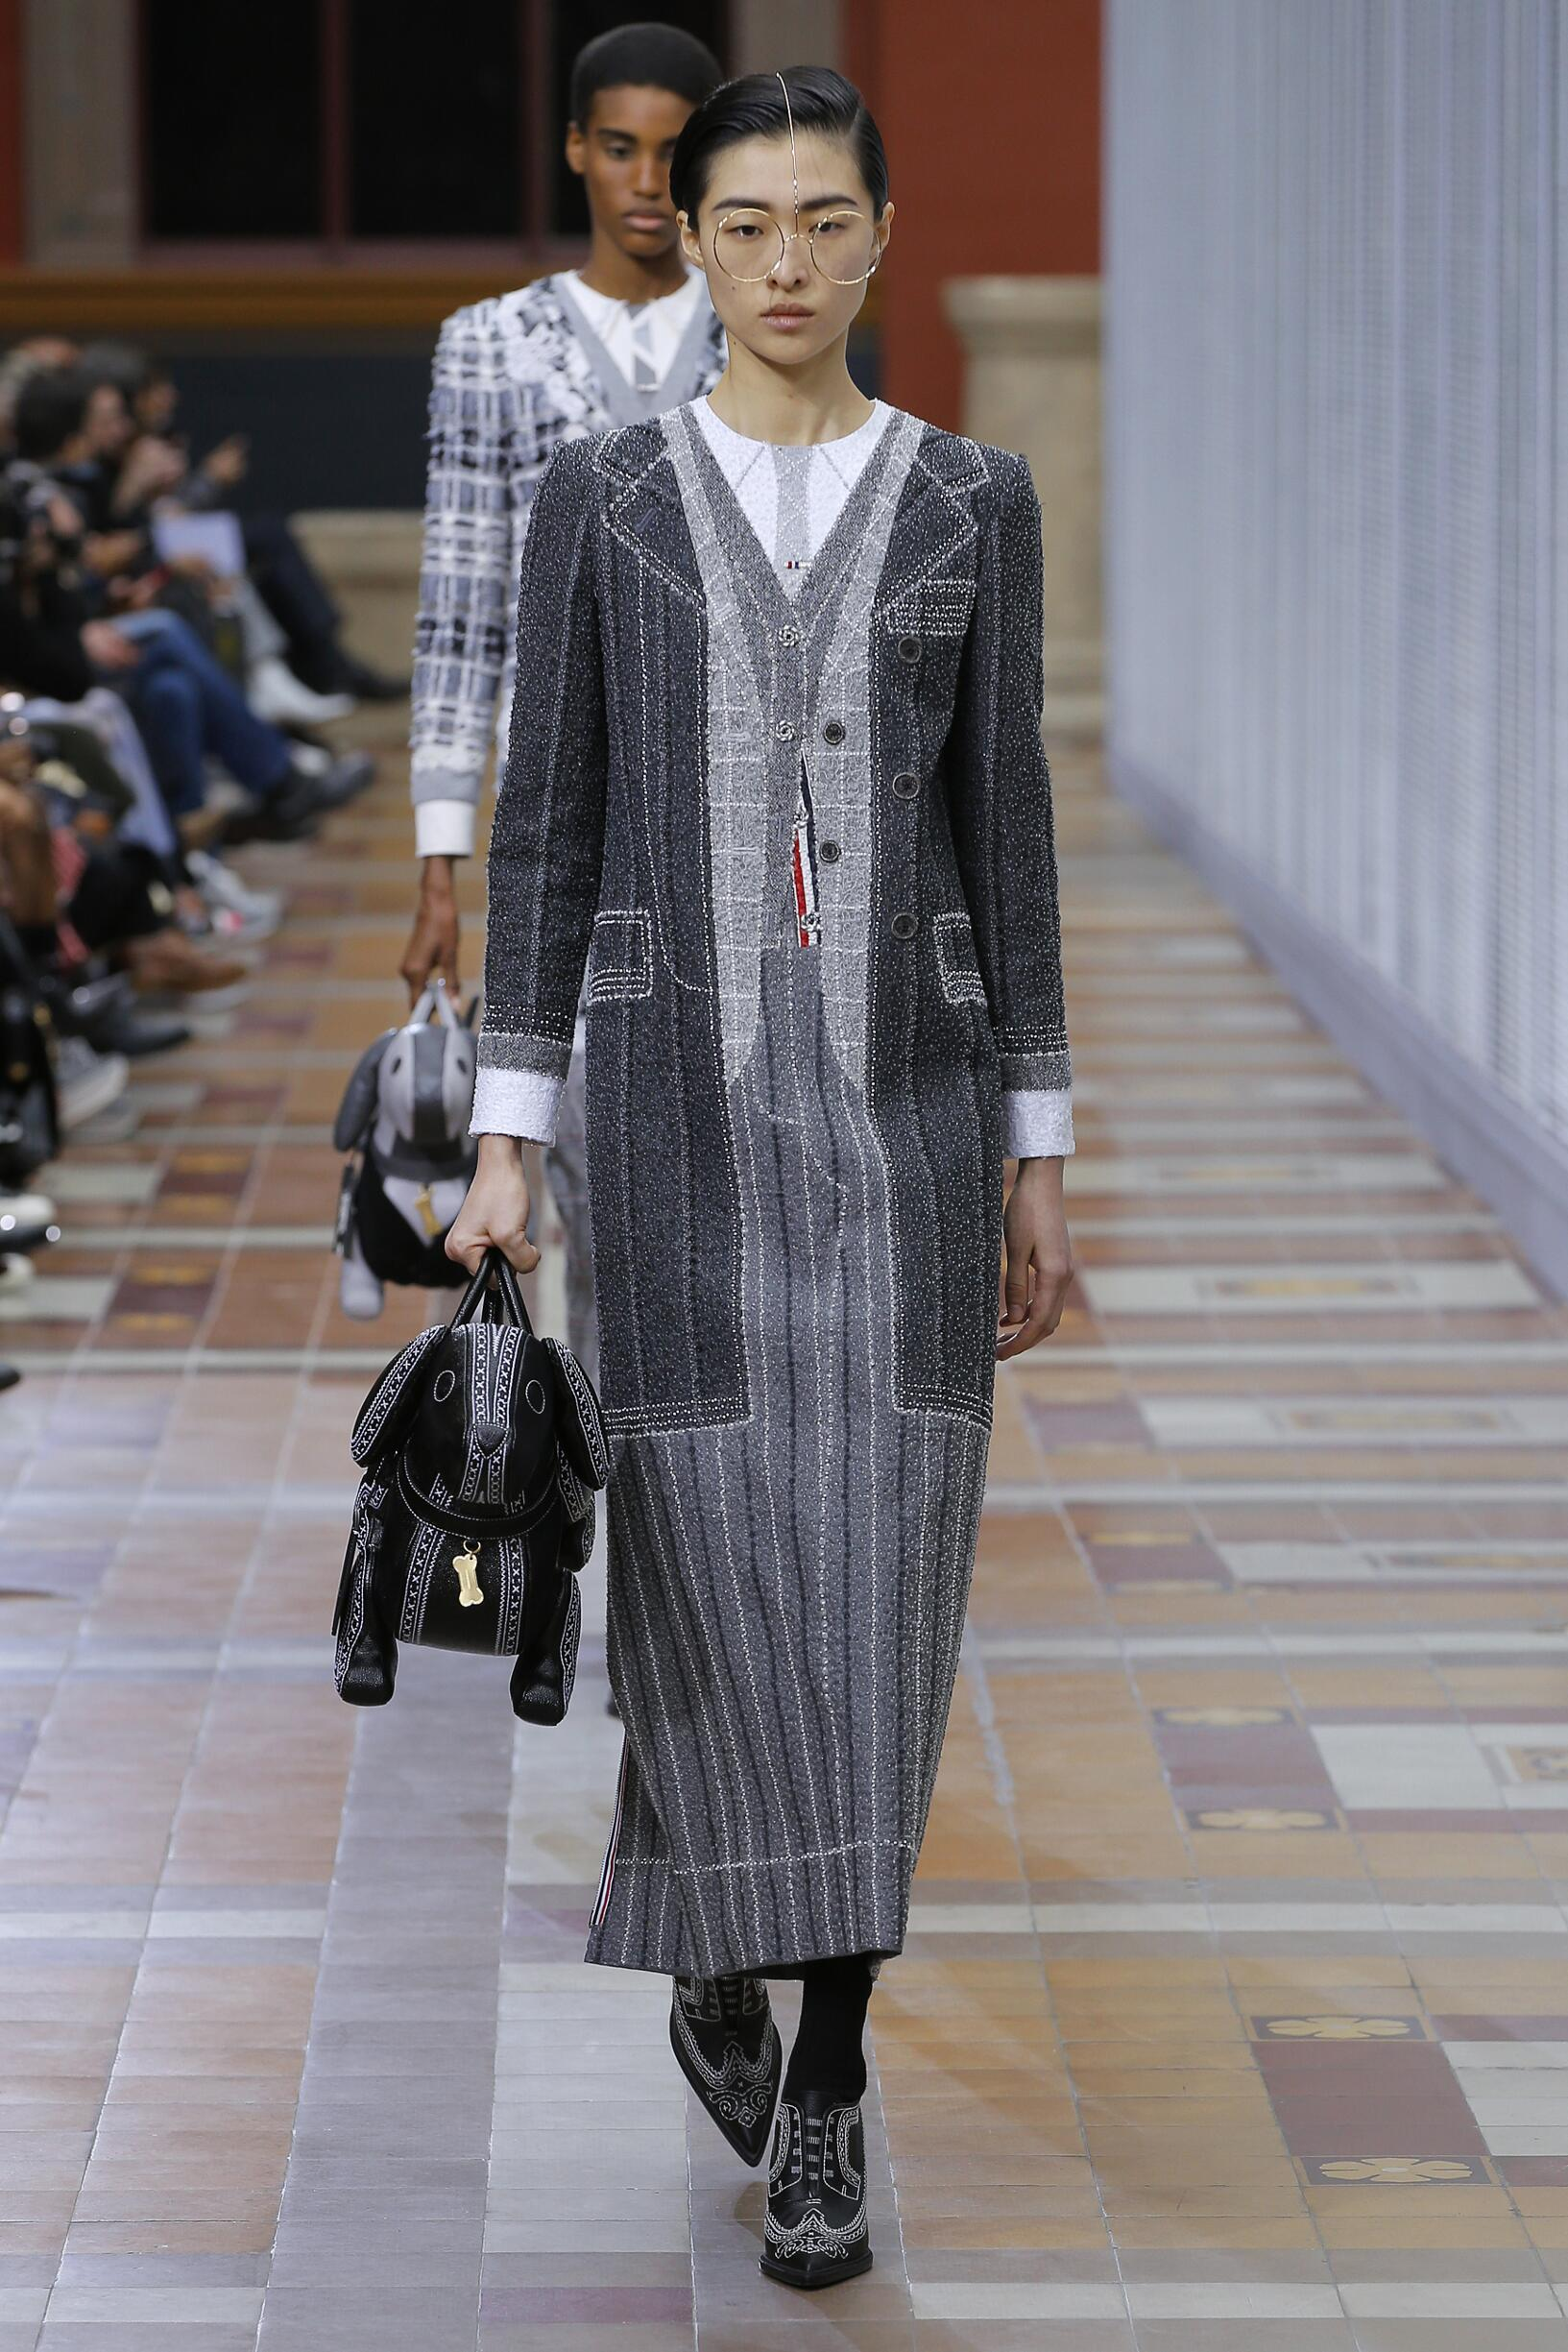 Thom Browne Womenswear Fashion Show